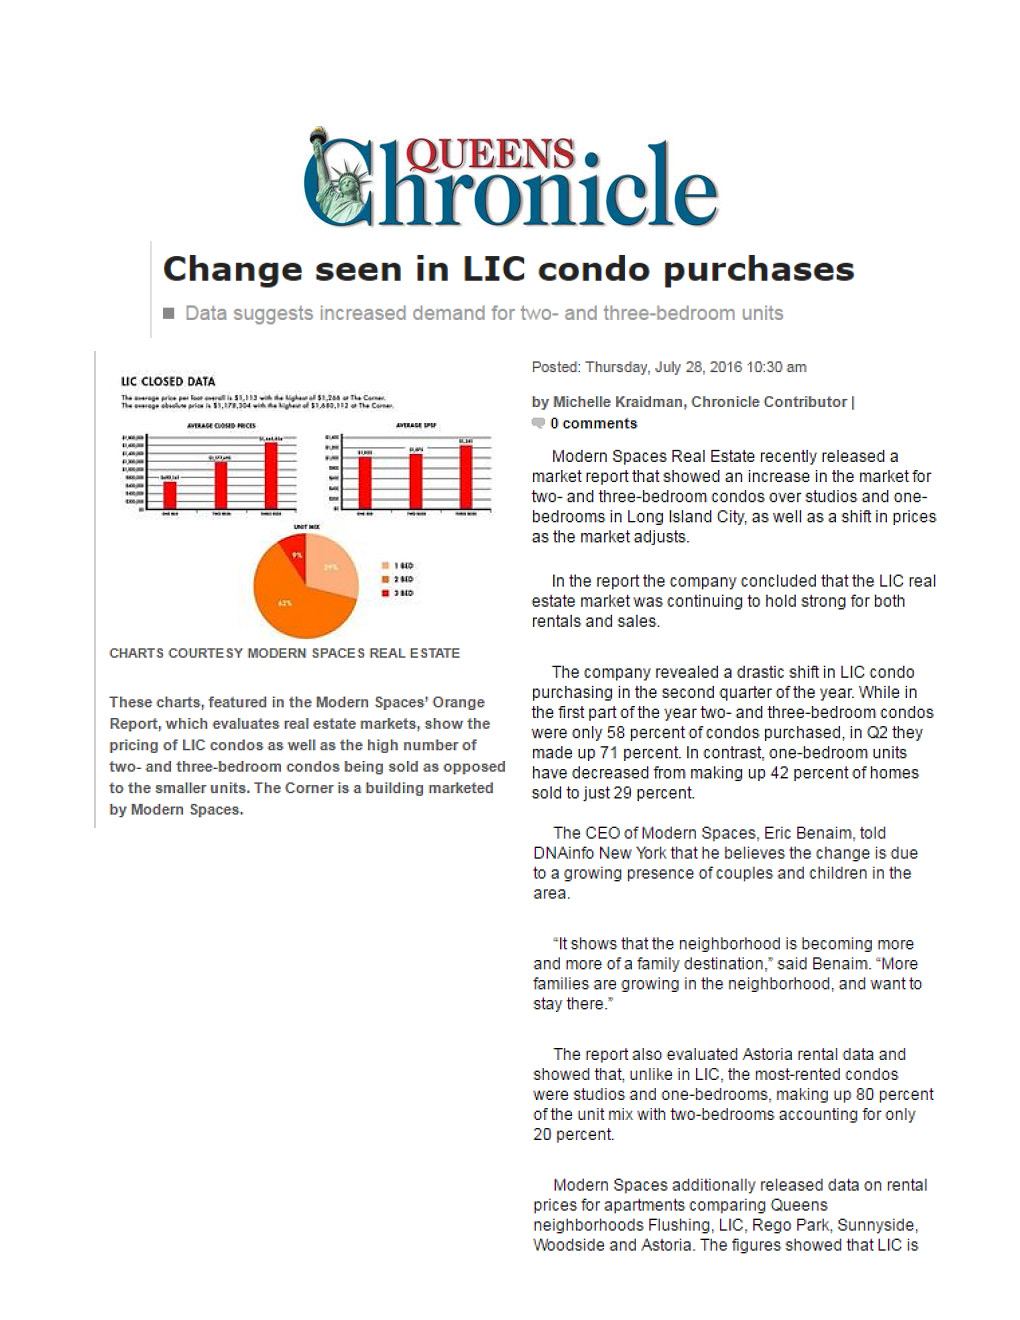 Queens Chronicle - Change Seen in LIC Condo Purchases - 7.29.16 (1)_Page_1